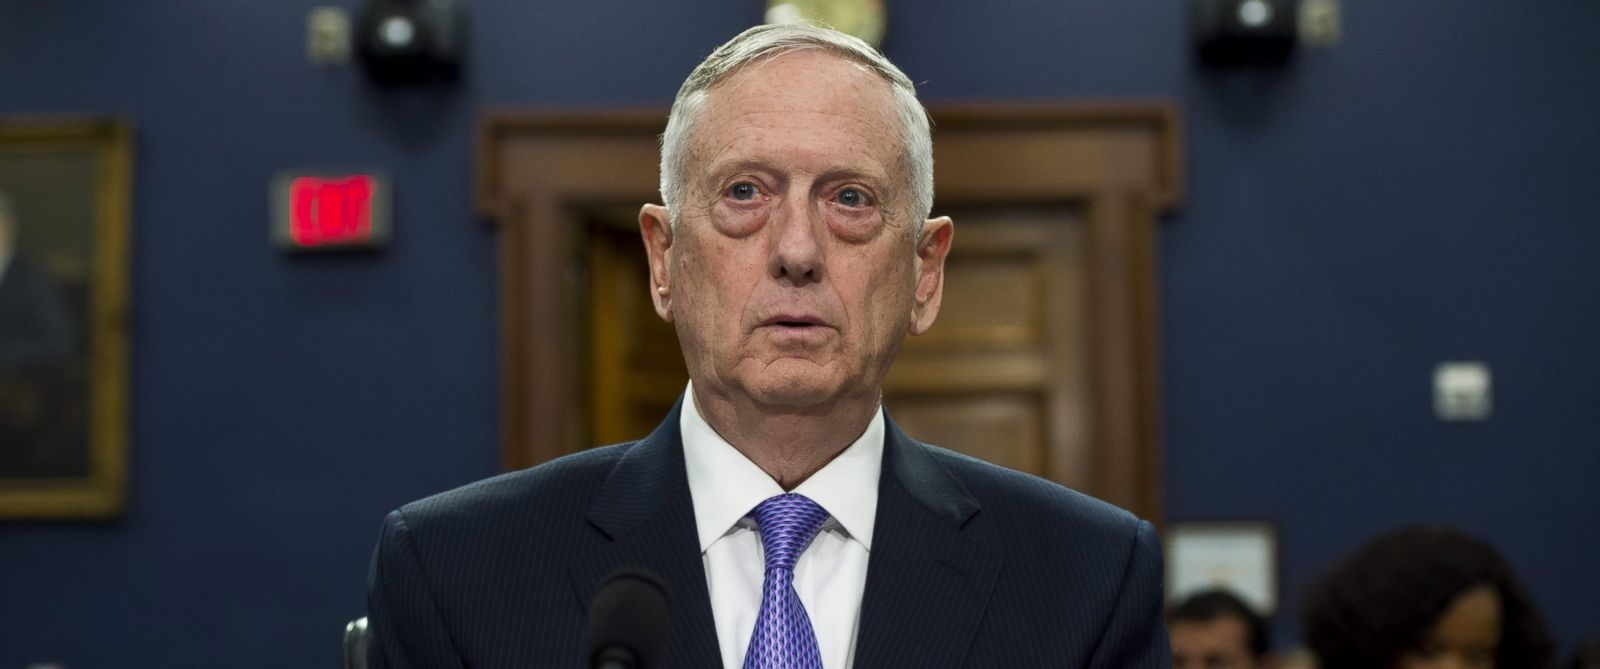 PHOTO: Secretary of Defense James Mattis arrives to testify on the Defense Department budget at a House Appropriations Committee Defense Subcommittee hearing on Capitol Hill in Washington, June 15, 2017.